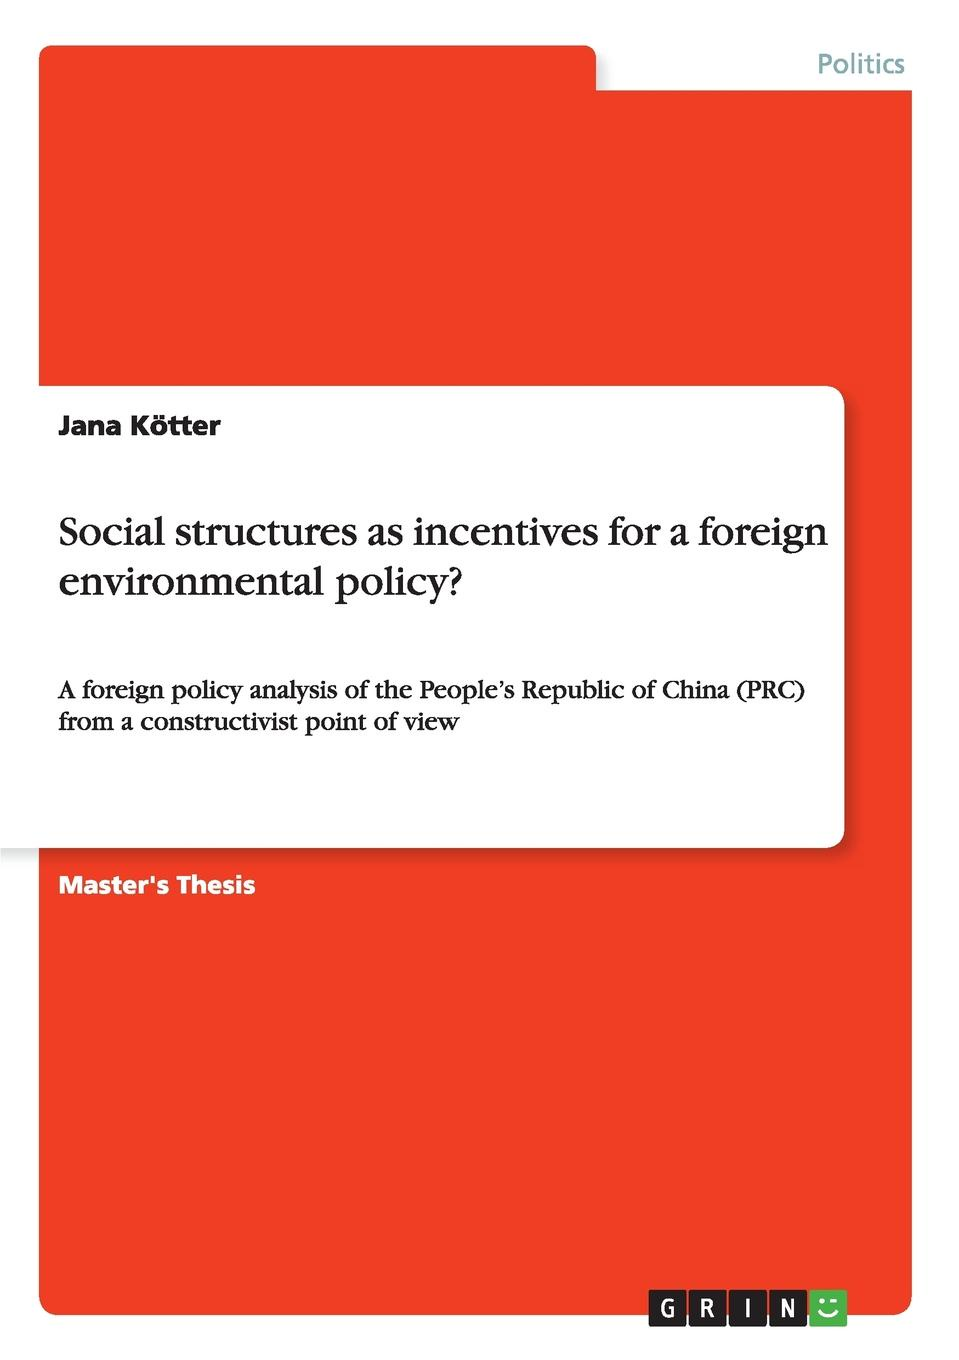 Jana Kötter Social structures as incentives for a foreign environmental policy. цена